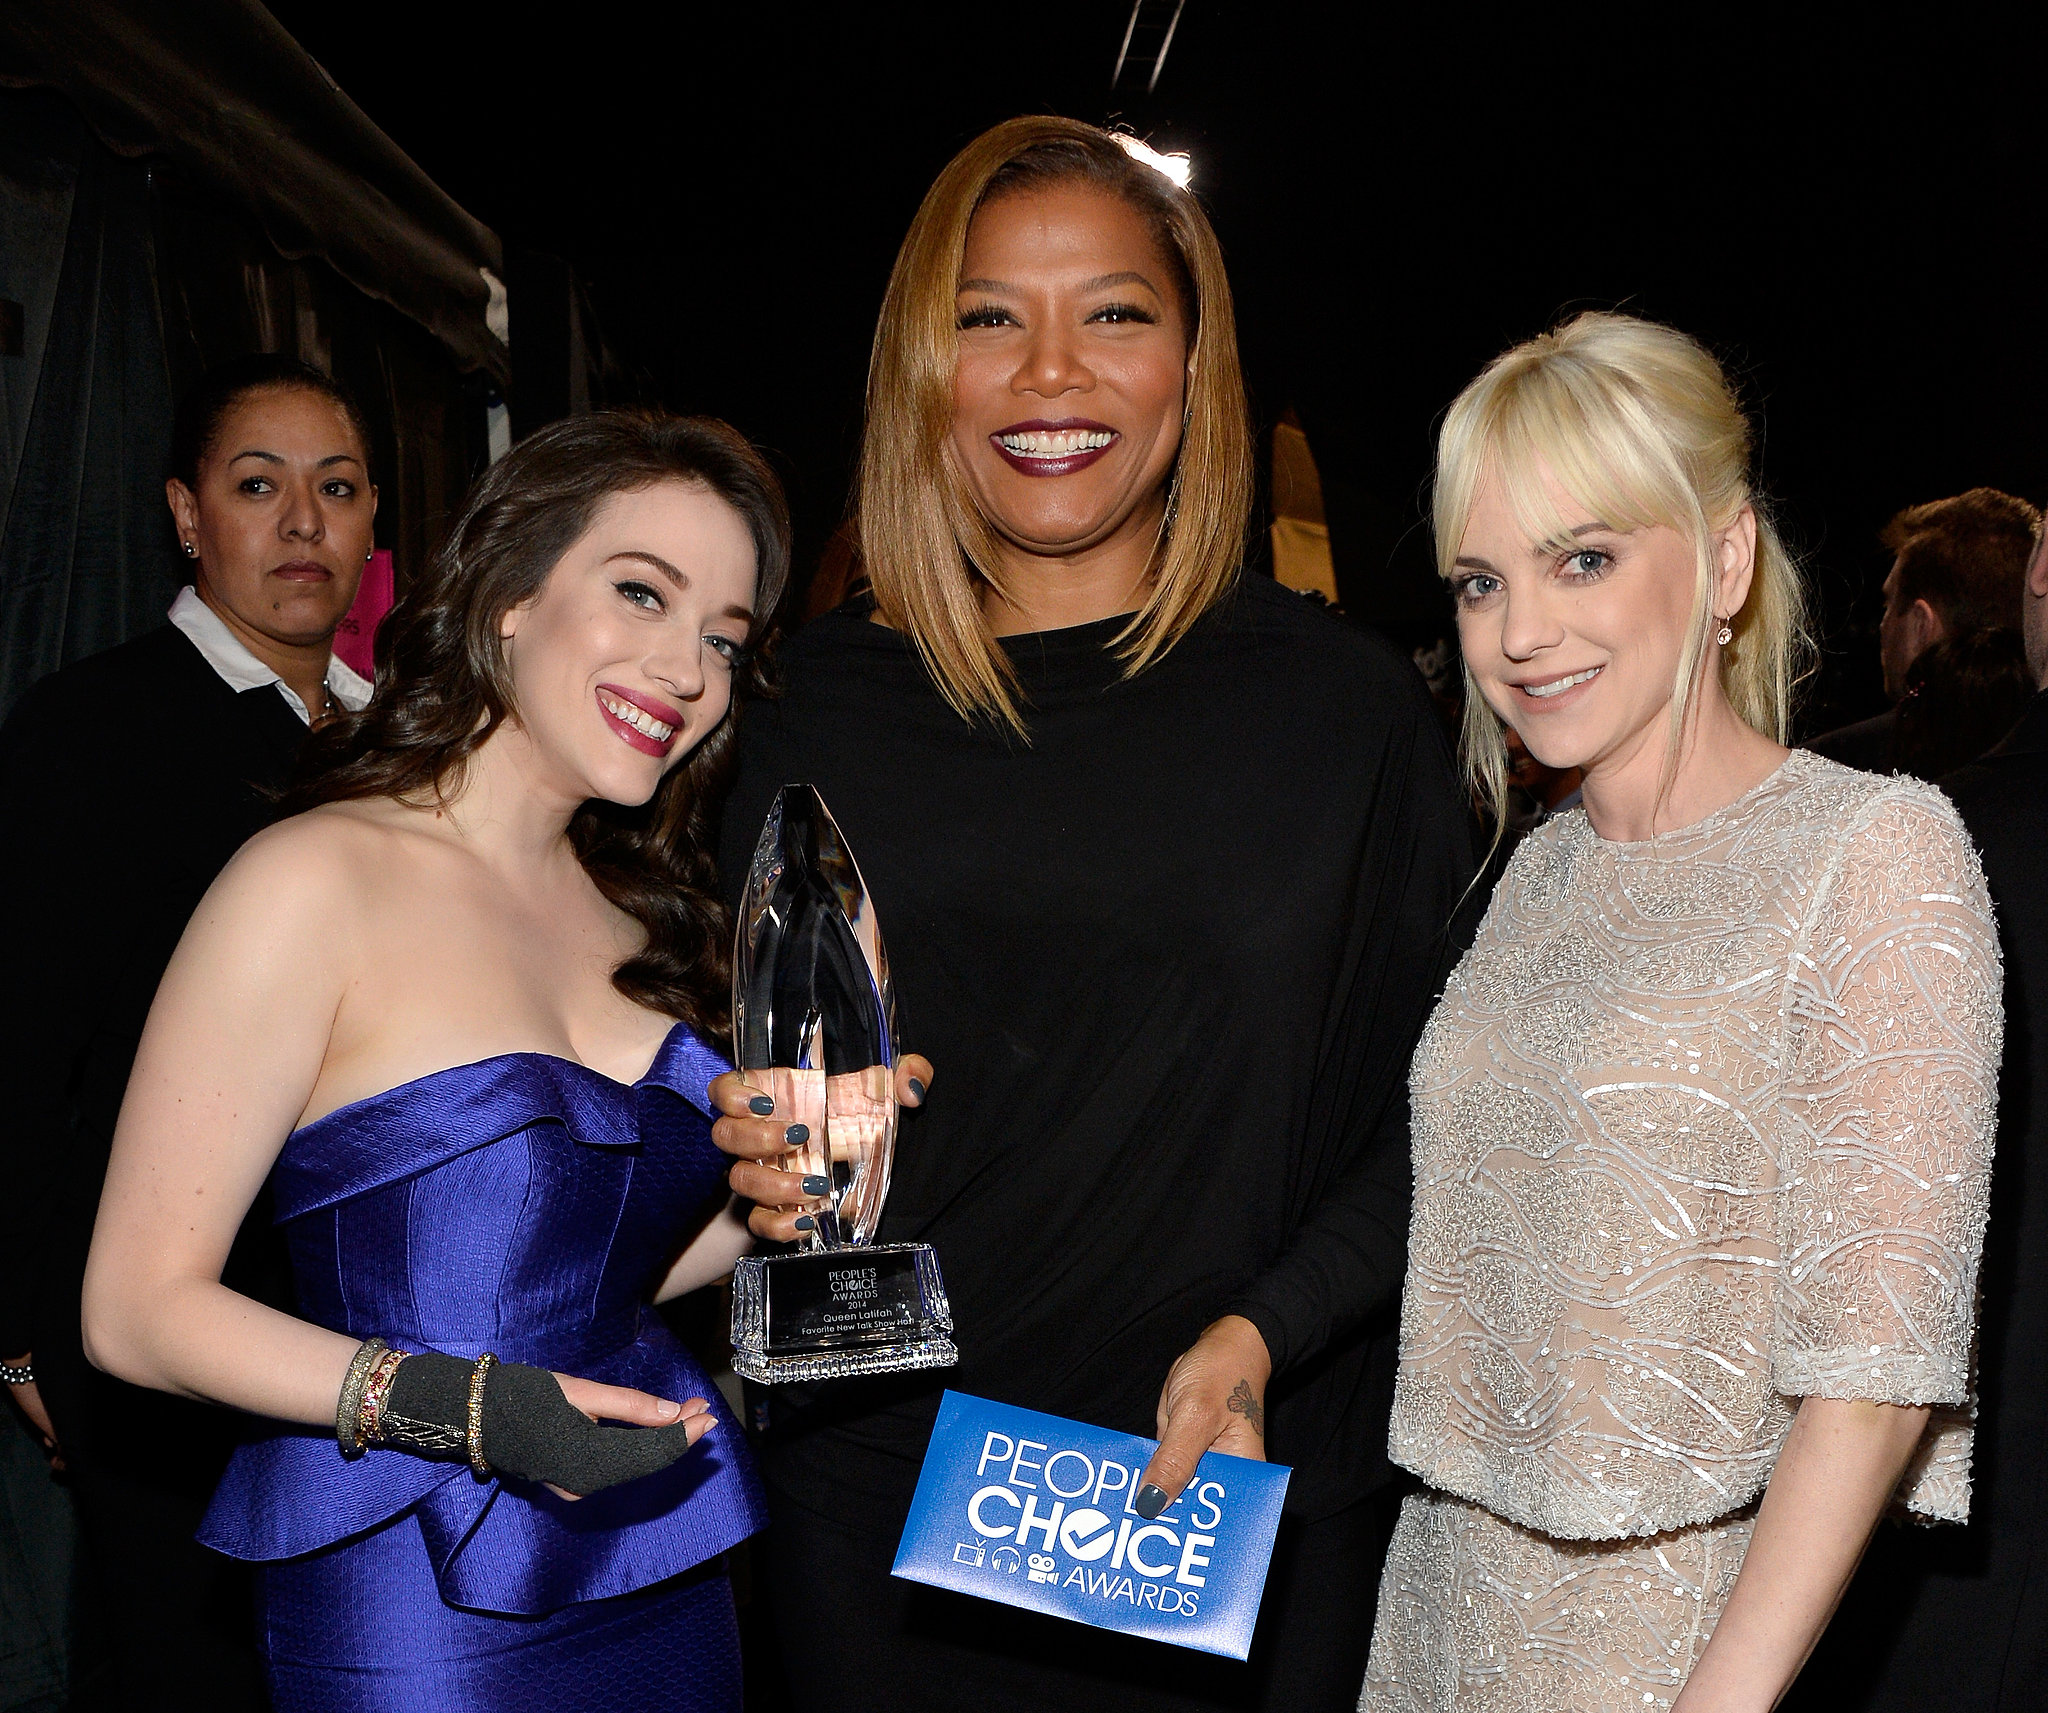 Queen Latifah showed off her statue for favorite new talk show host with Kat Dennings and Anna Faris backstage — see a list of all the People's Choice Awards winners.